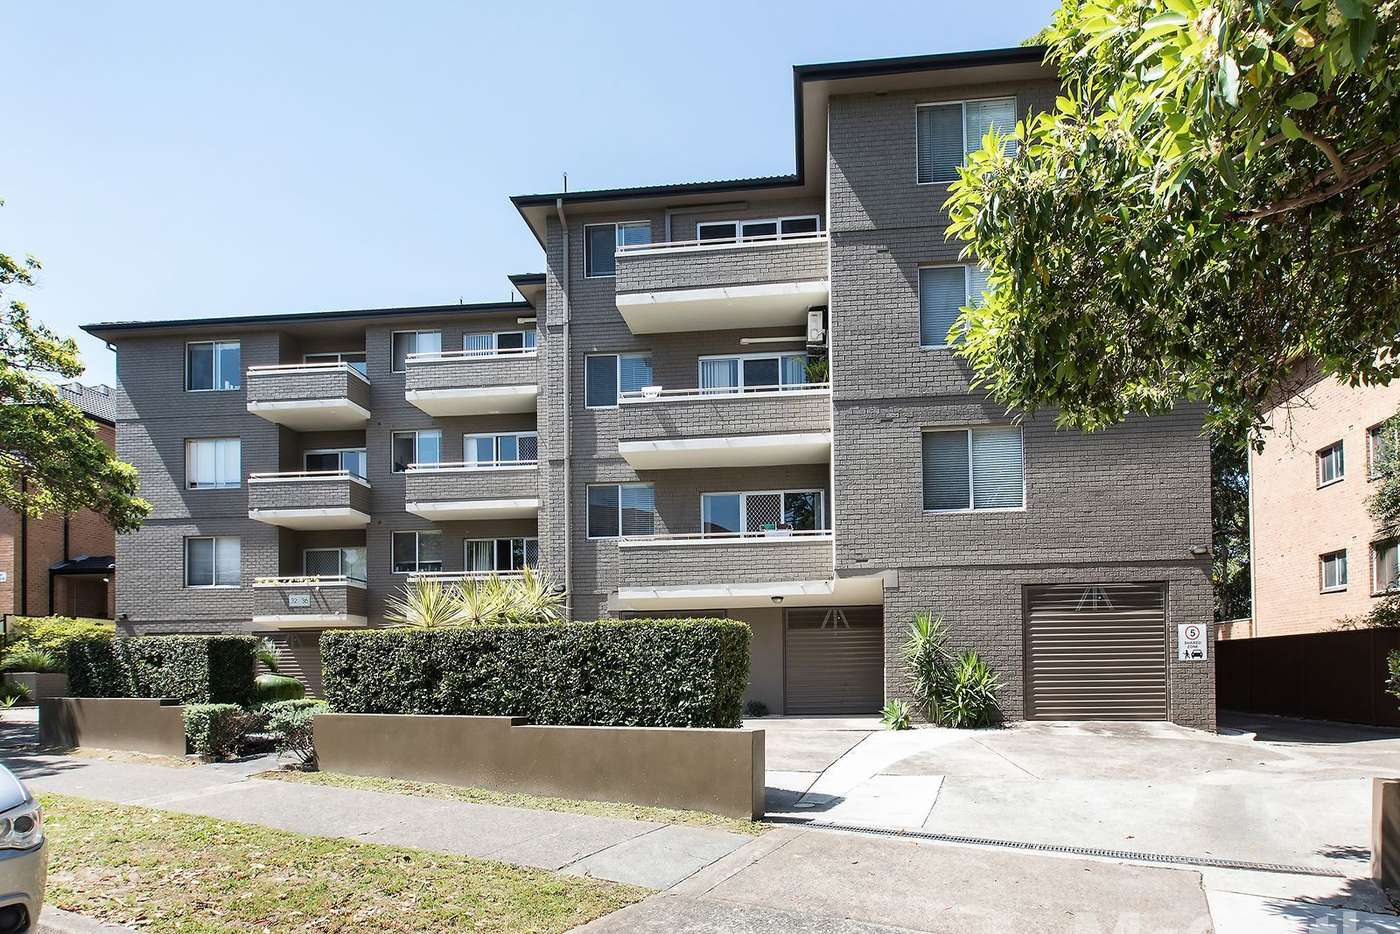 Main view of Homely apartment listing, 11/32 Chapel Street, Rockdale NSW 2216